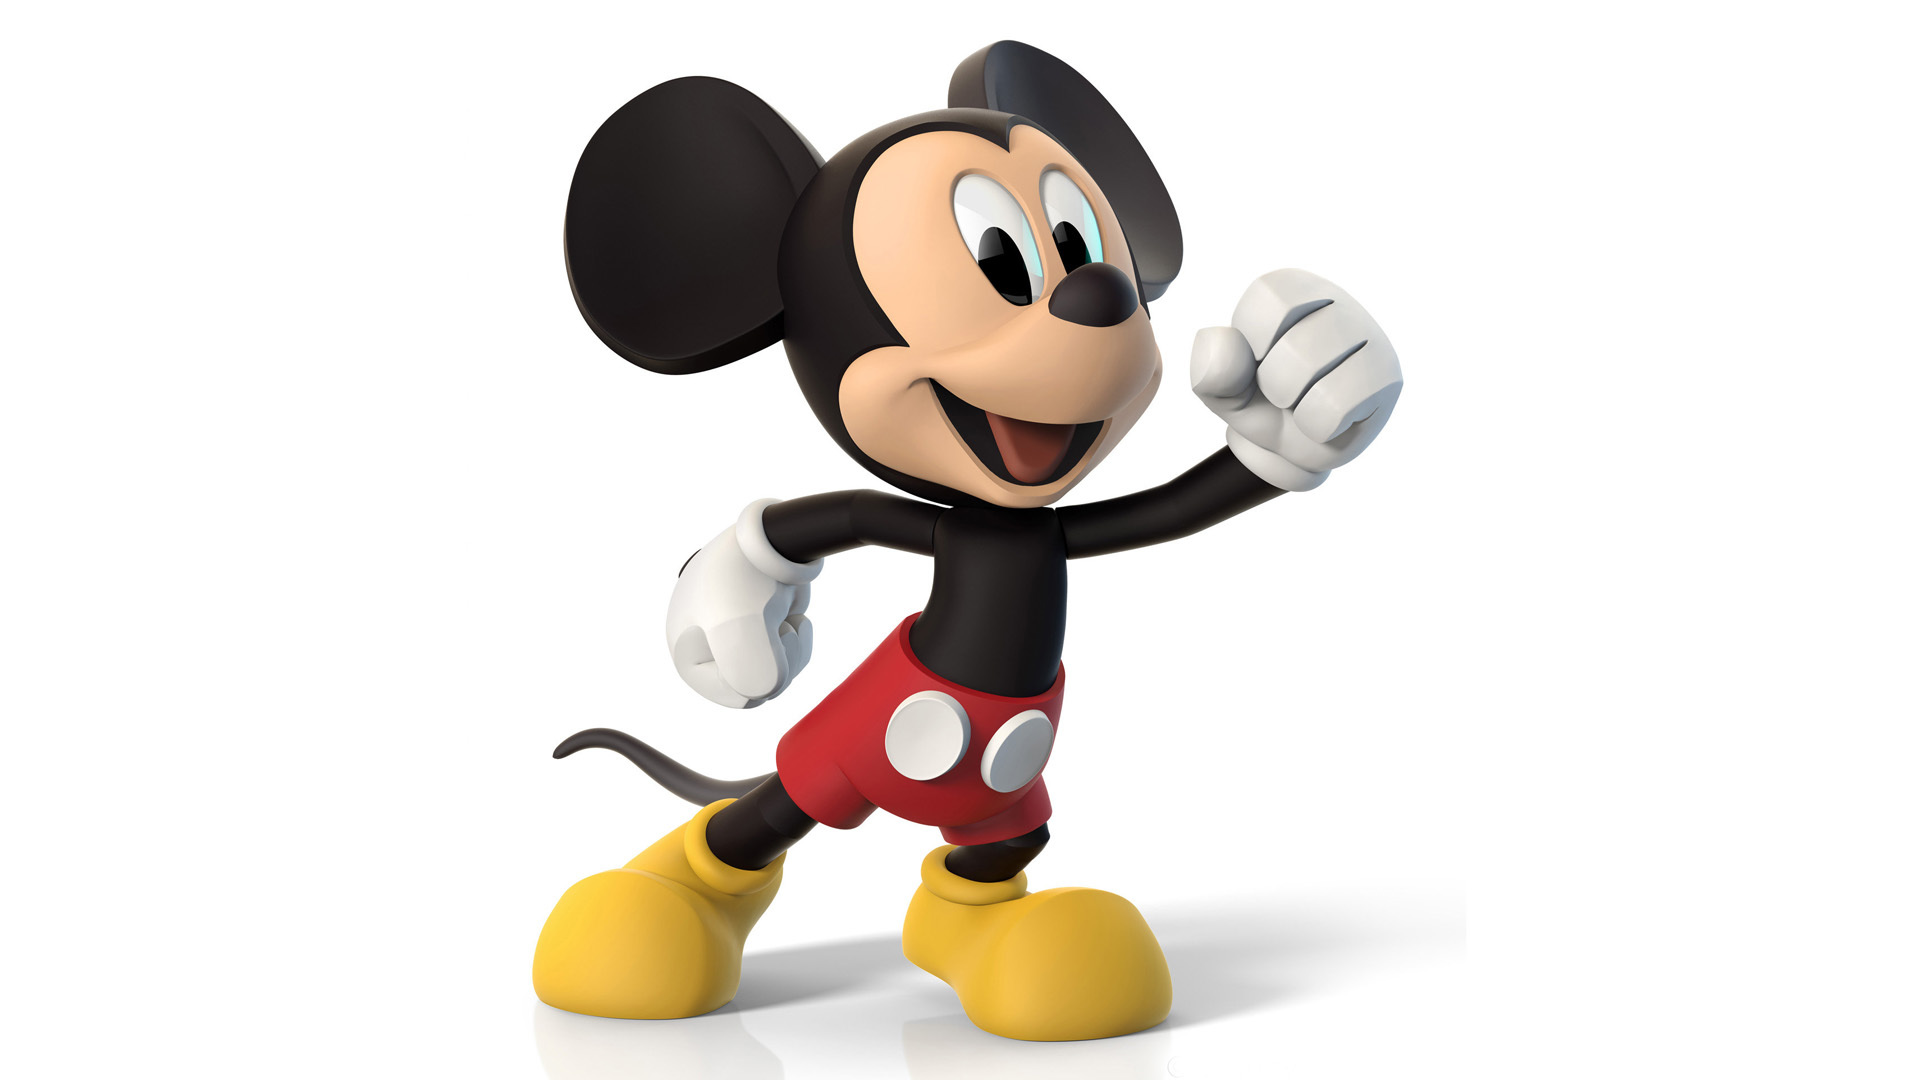 Mickey Mouse Hd Background